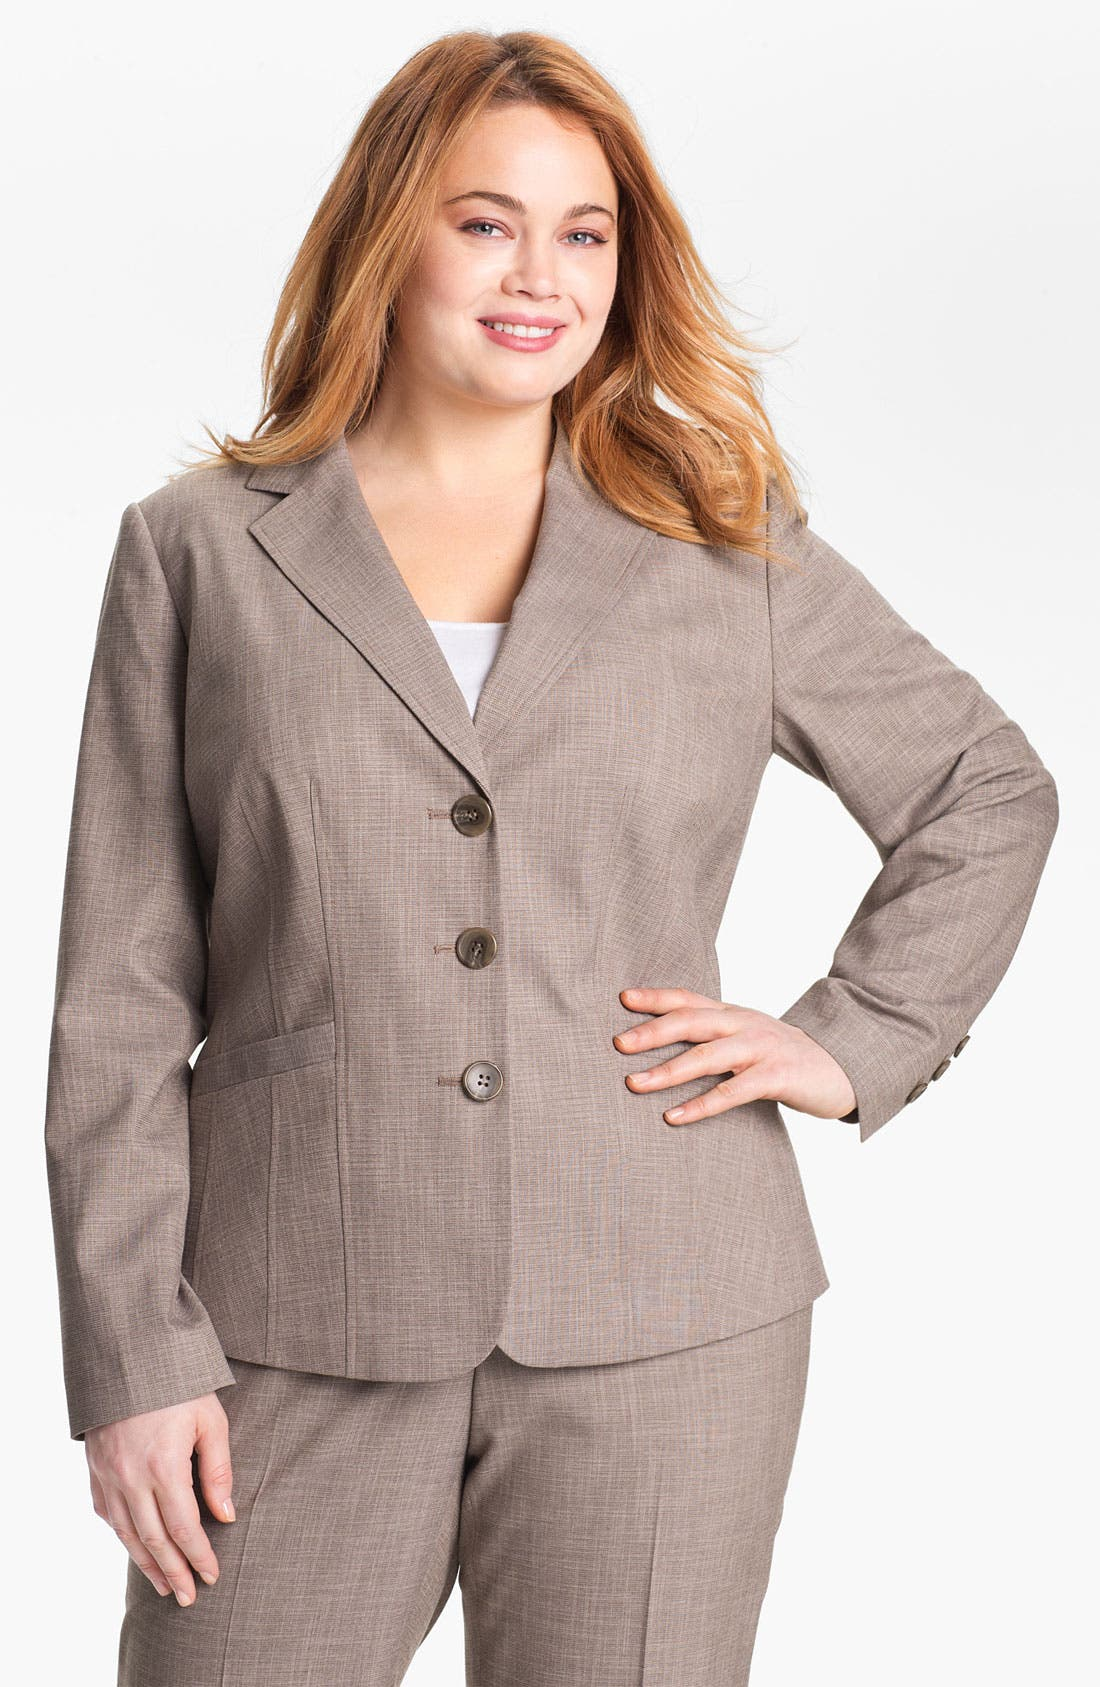 Alternate Image 1 Selected - Sejour 'Metric' Suit Jacket (Plus Size)